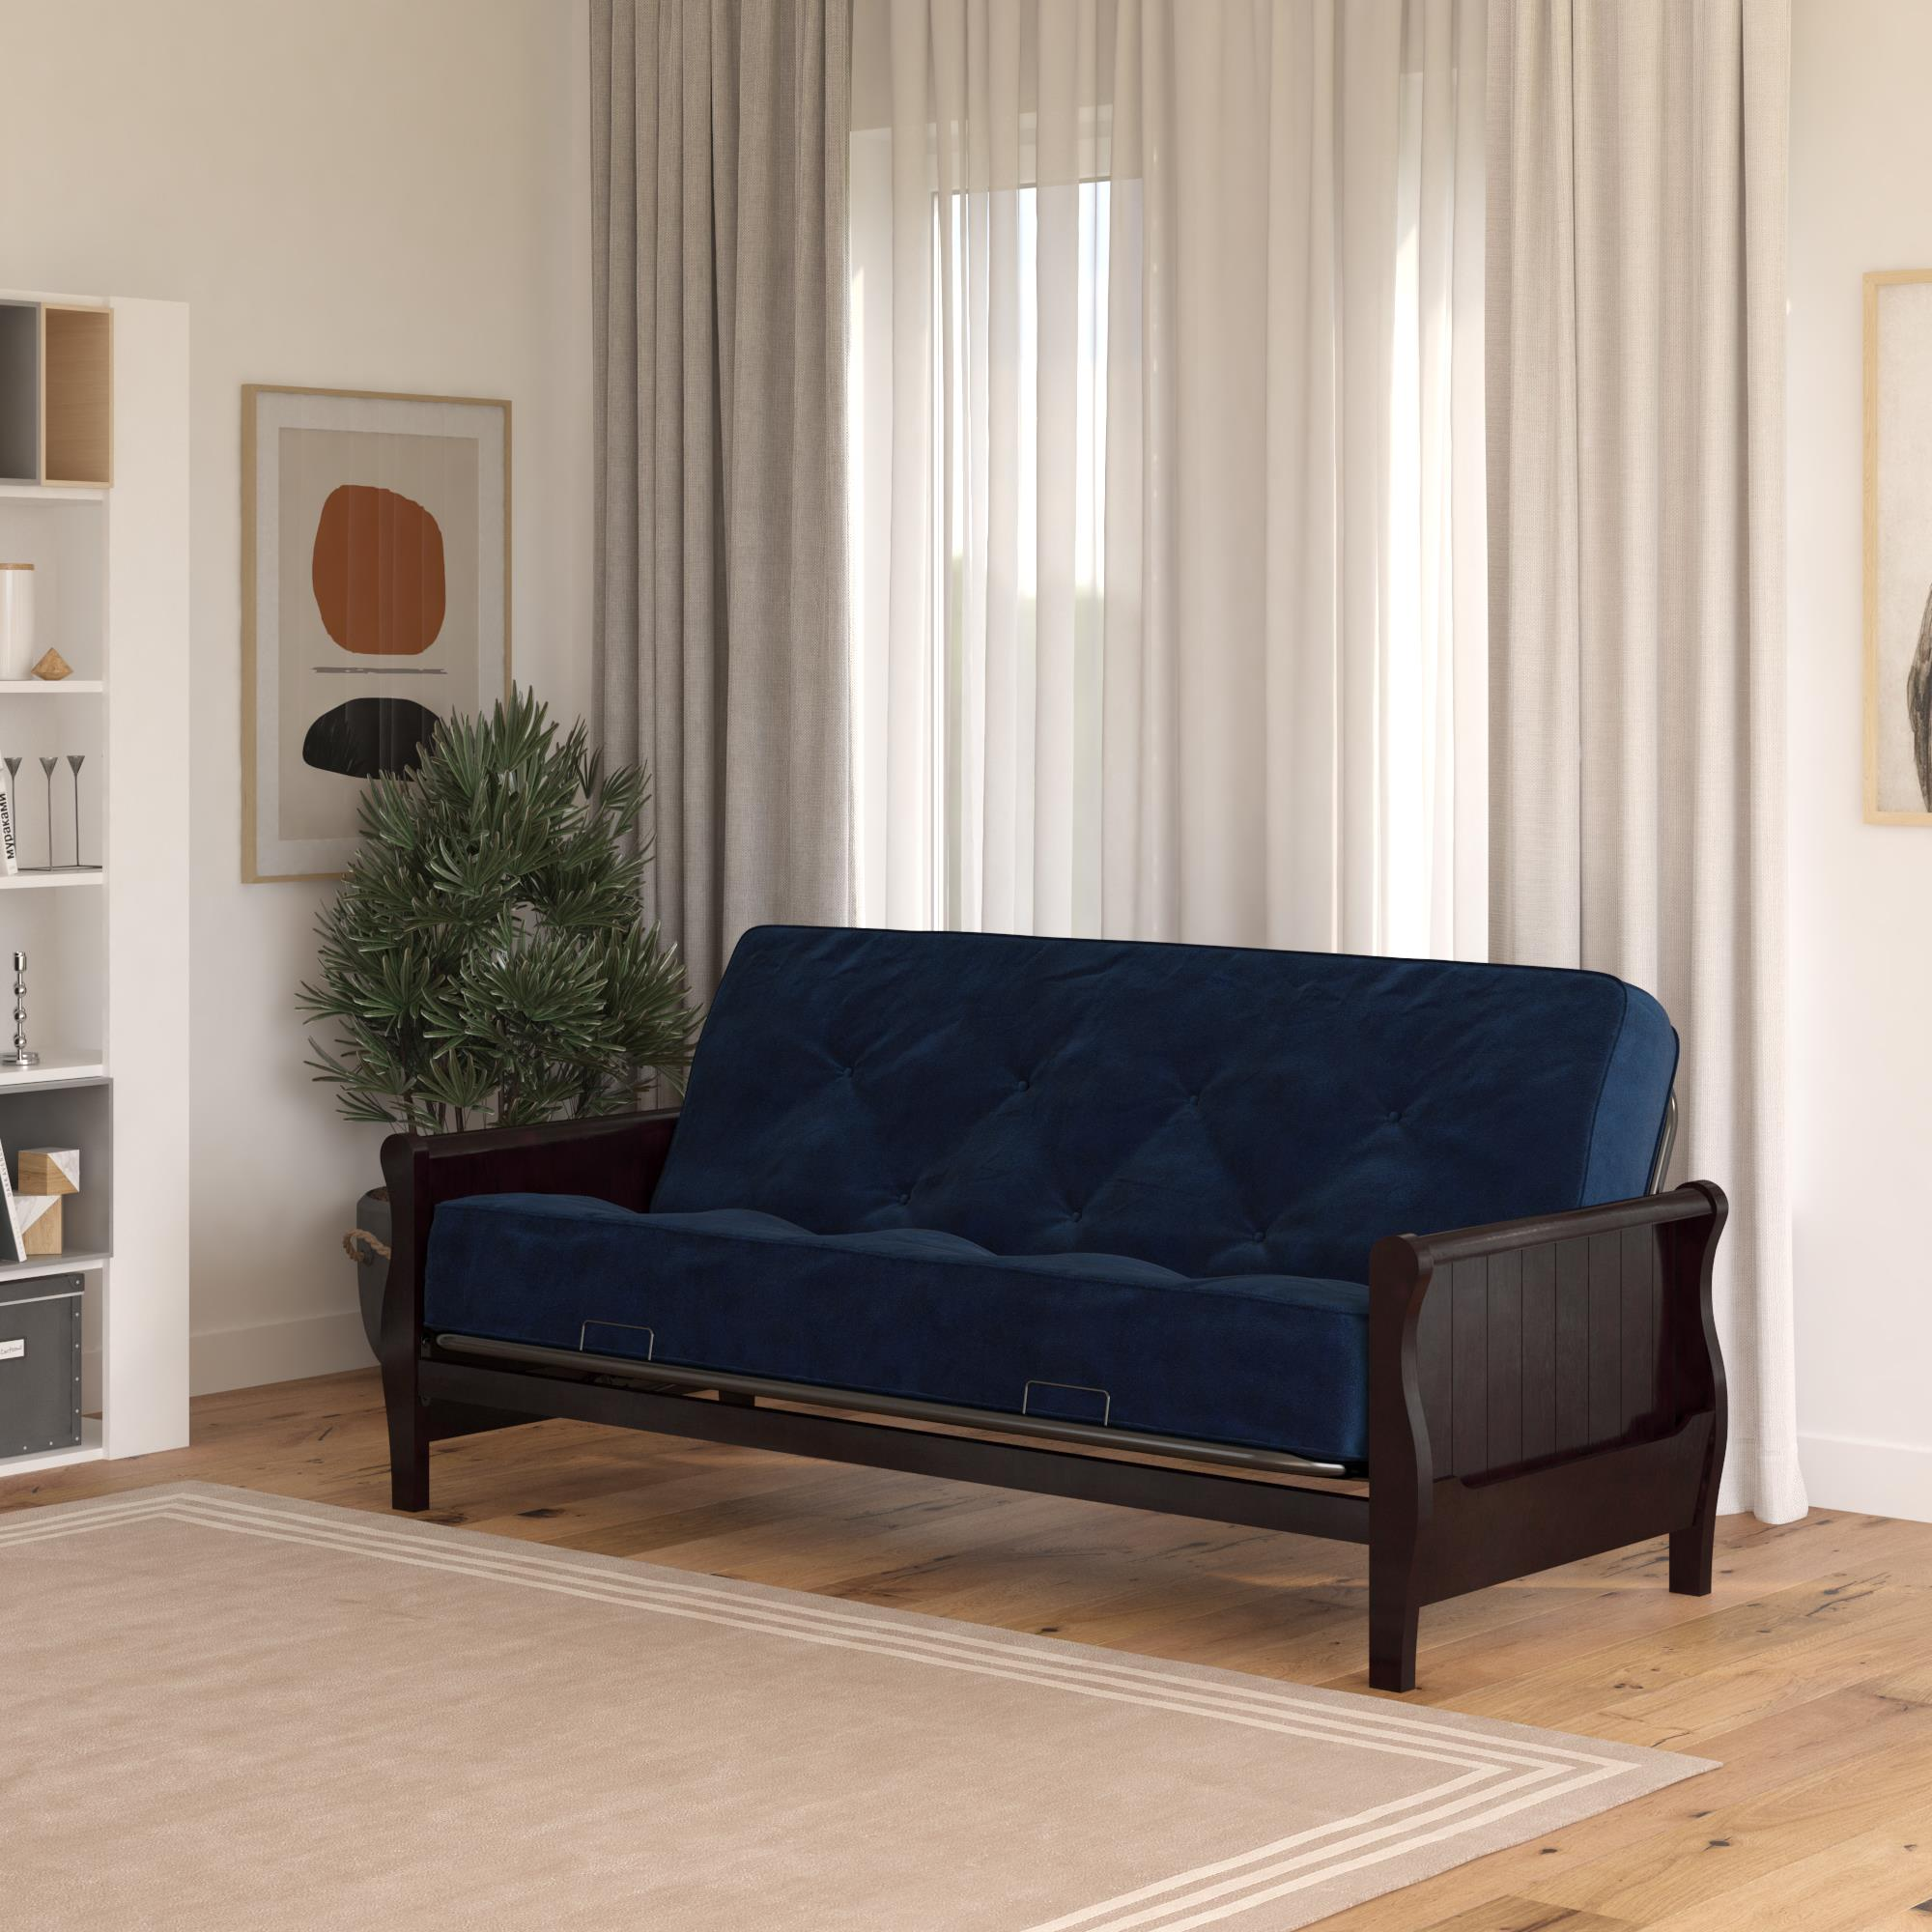 dhp wood arm futon with espresso finish and 8 coil mattress navy linen